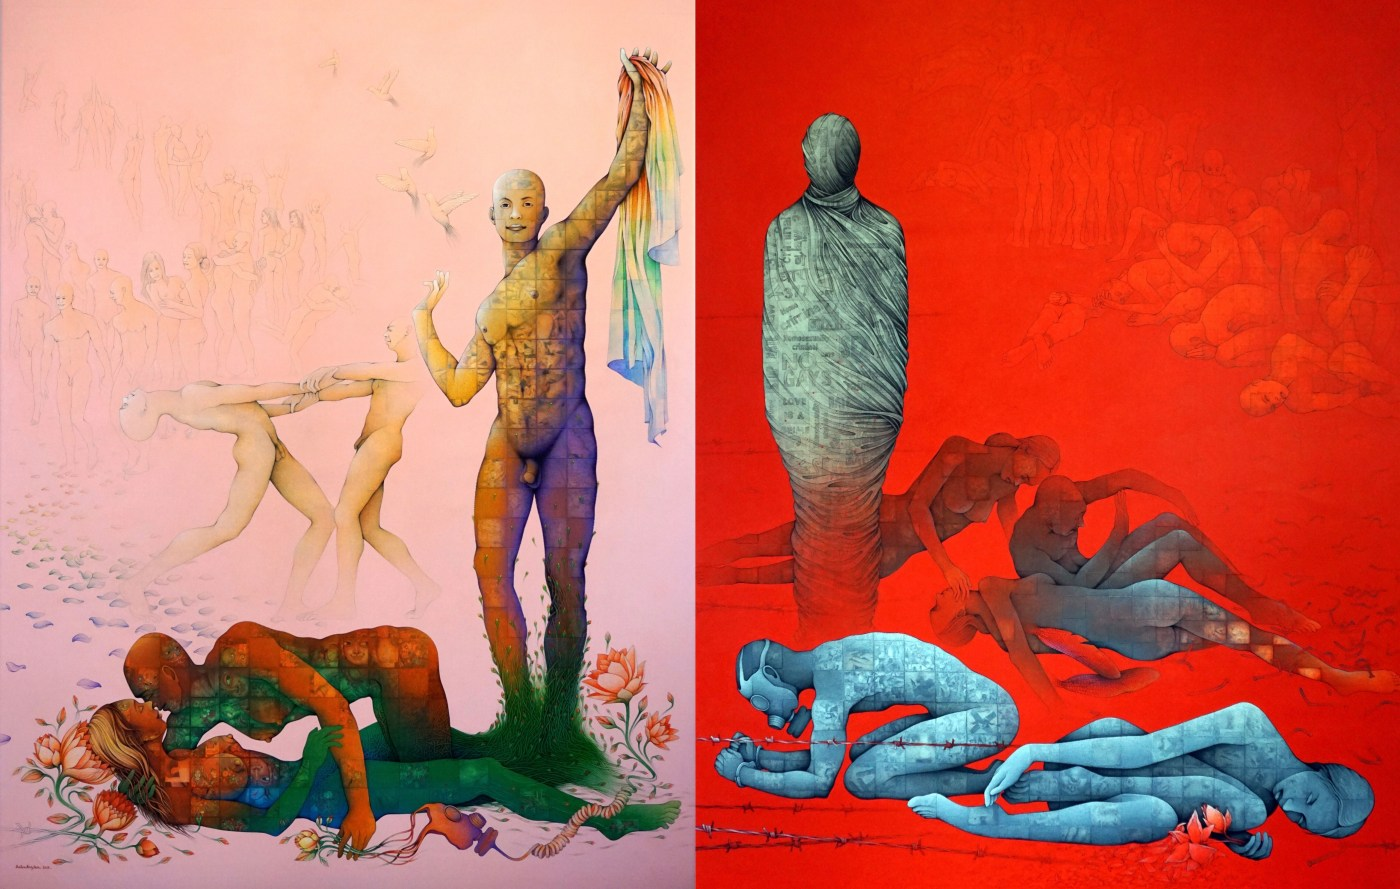 Newly-commissioned works by Balbir Krishan. [Right] Before: Section 377 – Don't Love, Don't Breathe, Don't Live, 2019, Collection of Sunpride Foundation. [Left] After: Section 377 – Love Equally, Love Freely, Love Proudly, 2019, Collection of Sunpride Foundation. Images courtesy of Sunpride Foundation.